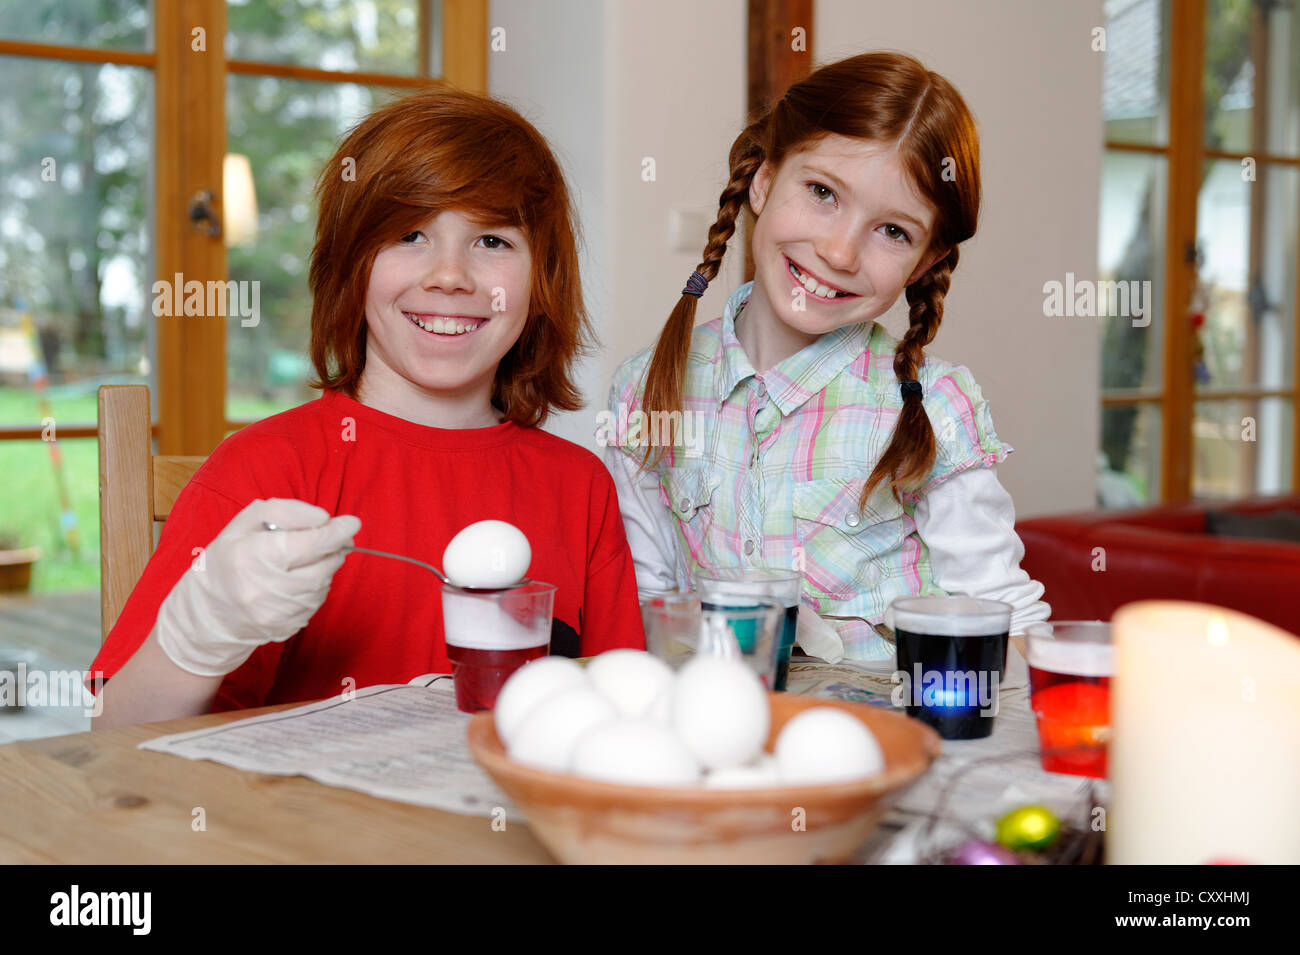 Boy and girl coloring Easter eggs, painting Easter eggs - Stock Image